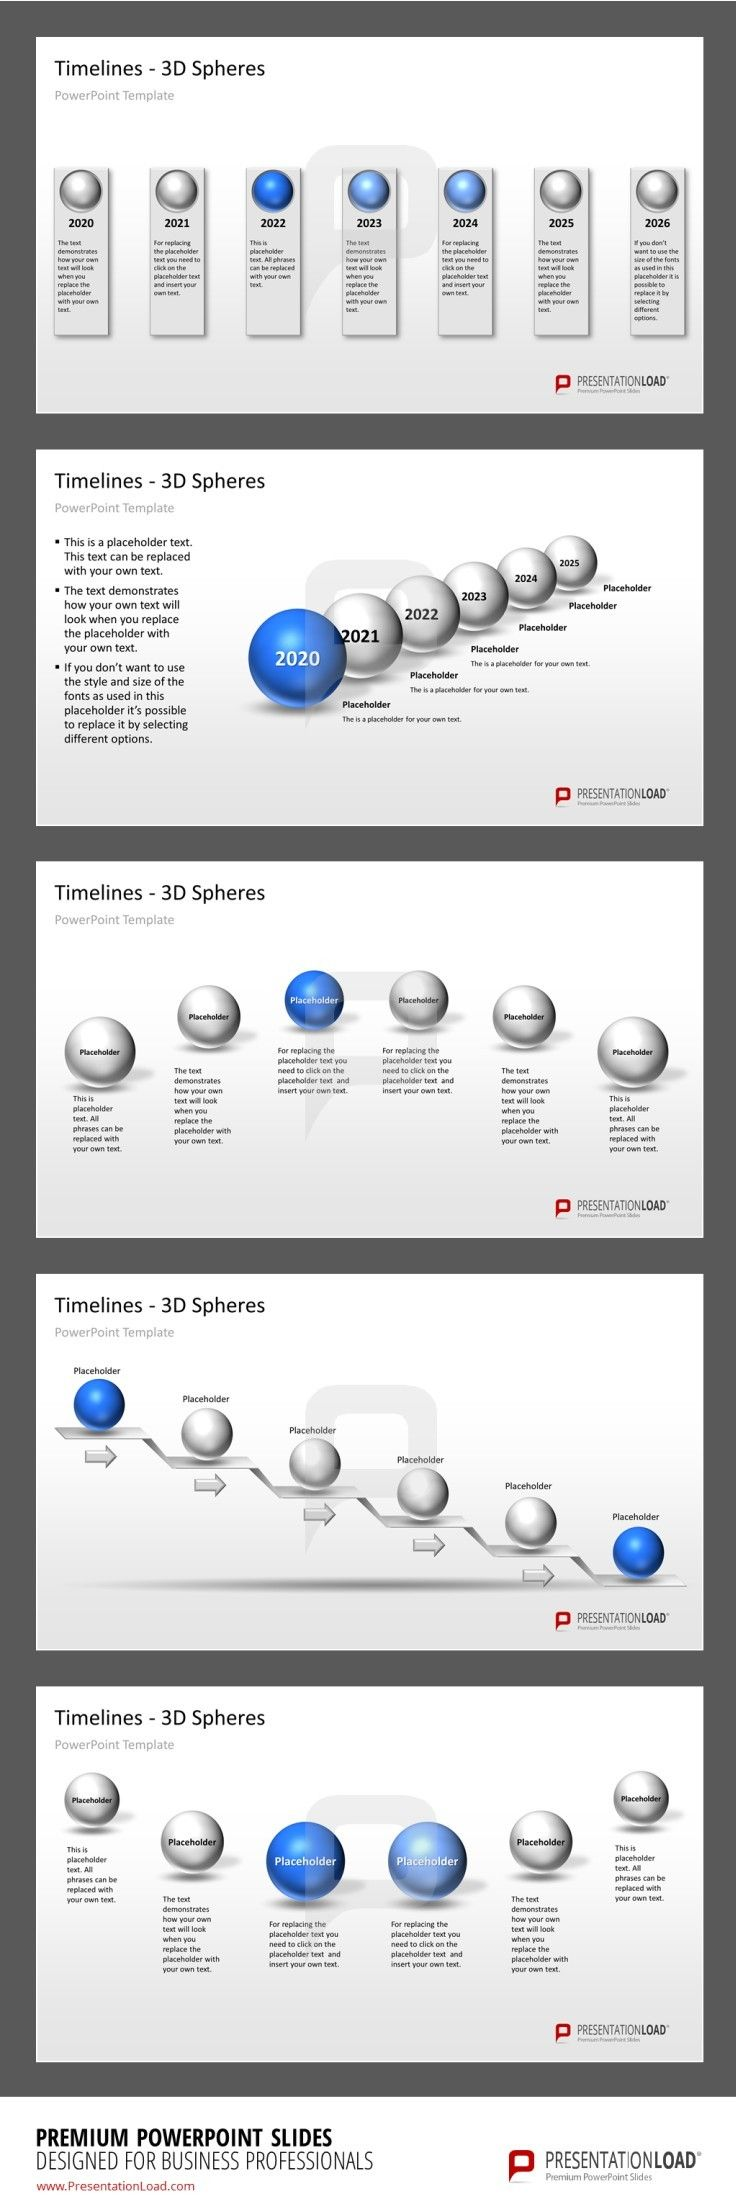 3D Spheres Timeline PPT Template Example #presentationload www.presentationload.com/3d-timelines-spheres.html